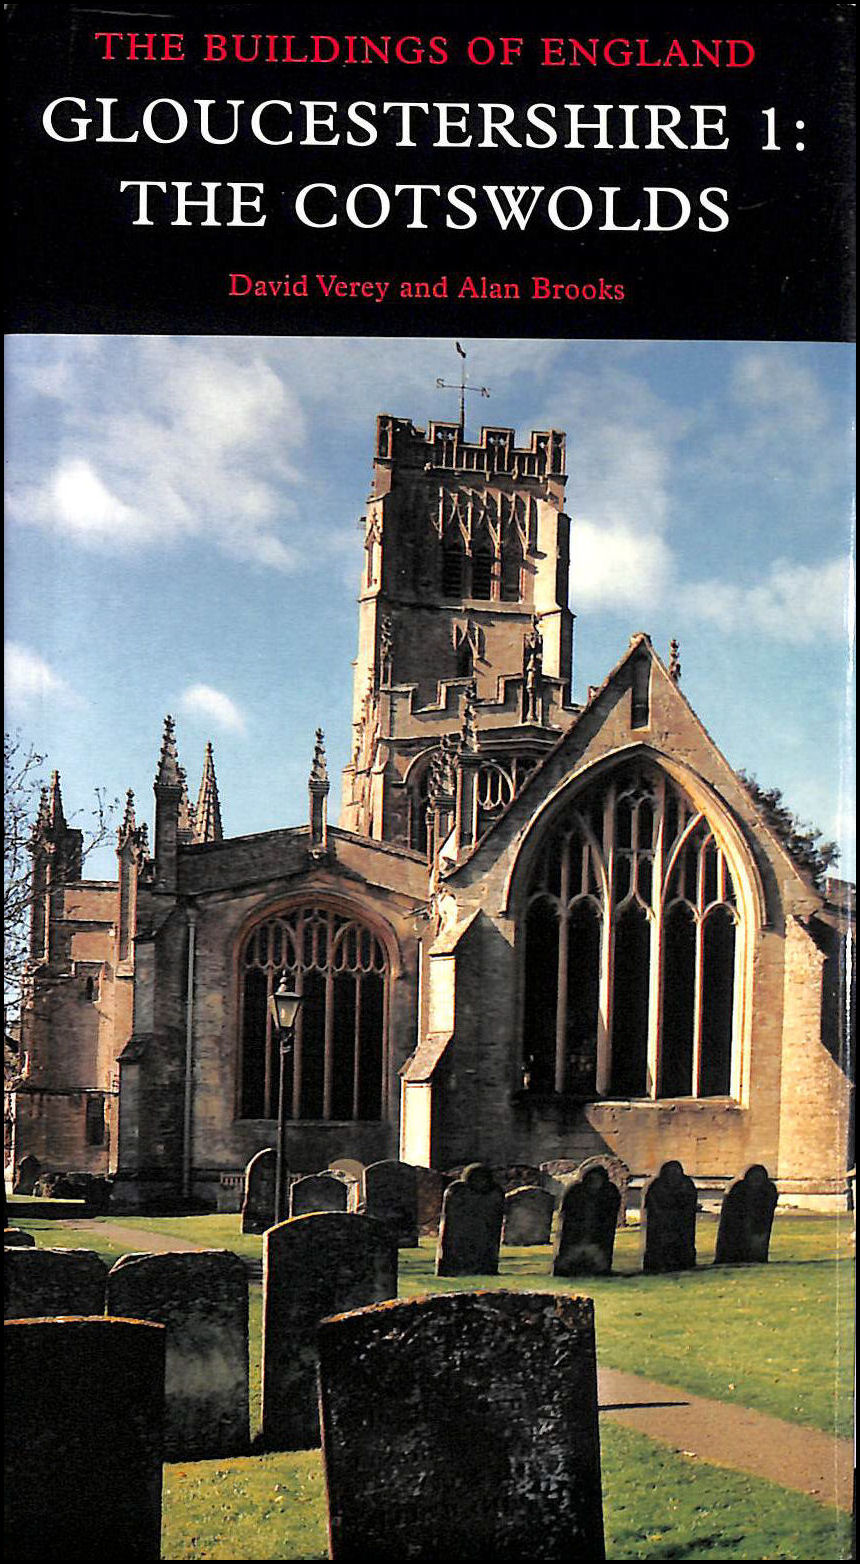 Gloucestershire: The Cotswolds: No. 1: Cotswolds Pt. 1 (Pevsner Architectural Guides: Buildings of England), David Verey; Alan Brooks